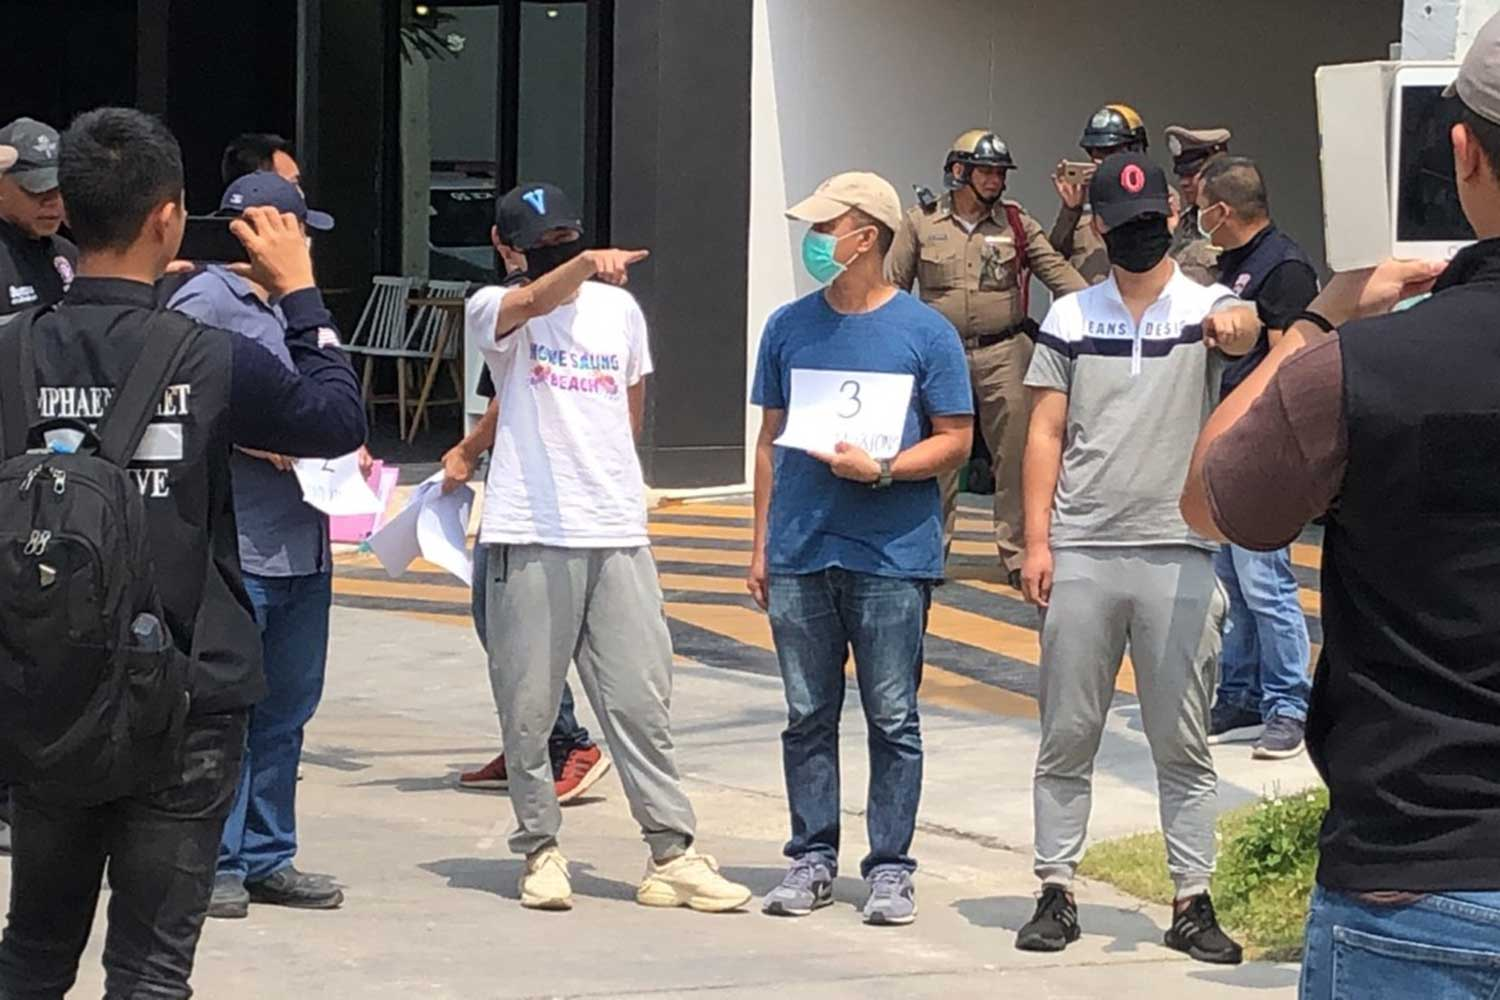 Fan Gang Gang, 24, and Qin Miao, 31, both wearing black face masks, are taken for crime re-enactment at a house in Pattaya. (Photo by Chaiyot Pupattanapong)